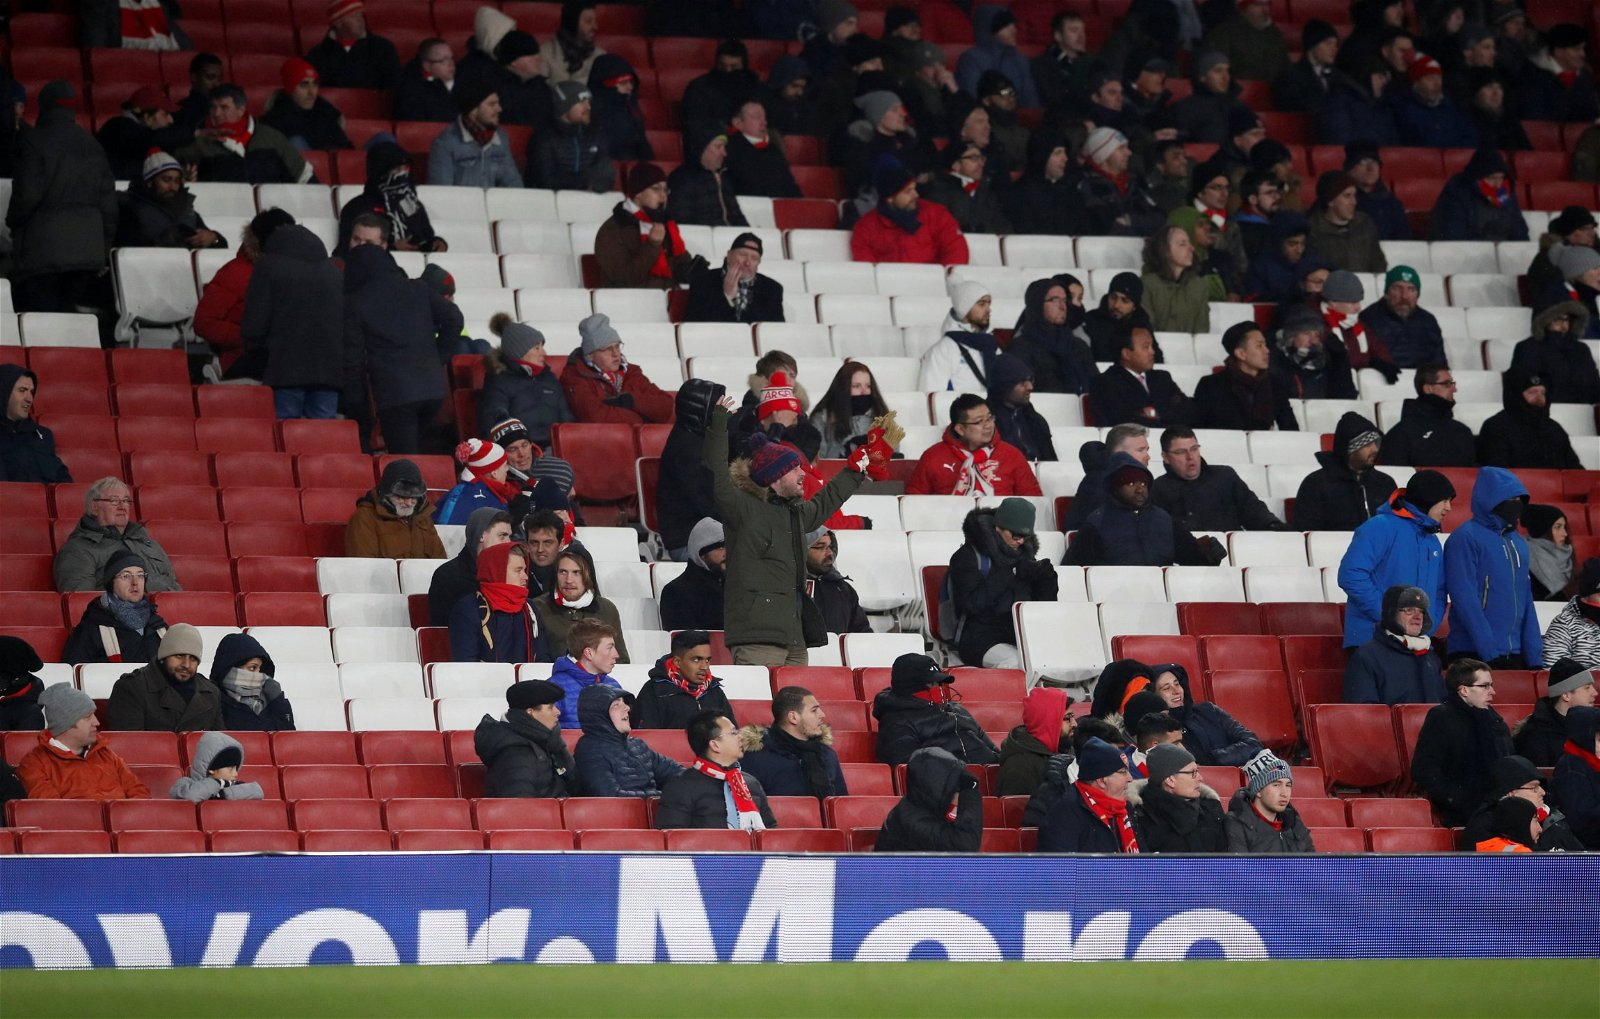 Empty Seats at the Emirates Stadium